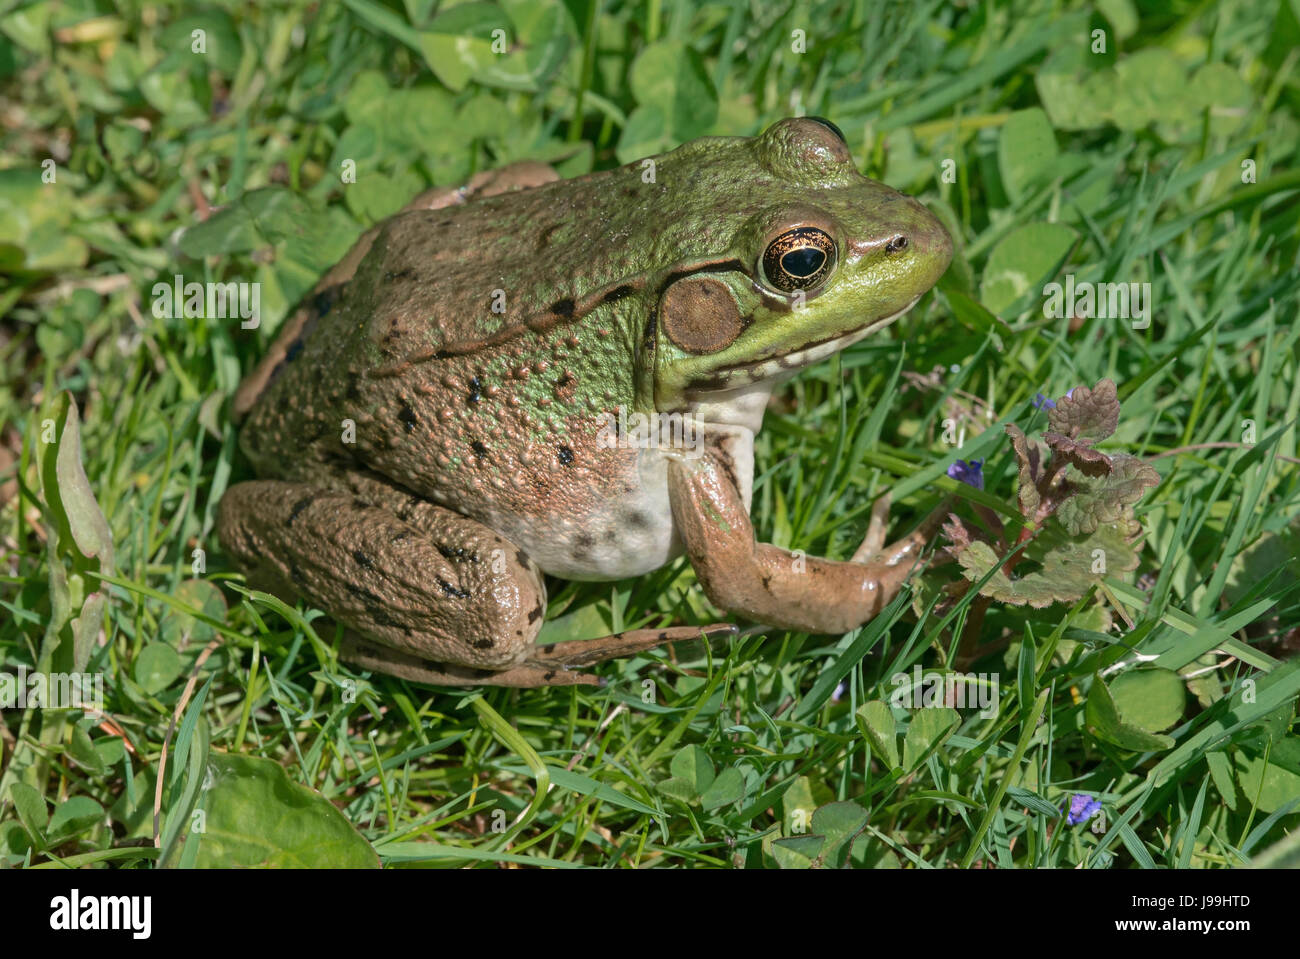 Green Frog (Rana clamitans or Lithobates clamitans), E USA - Stock Image